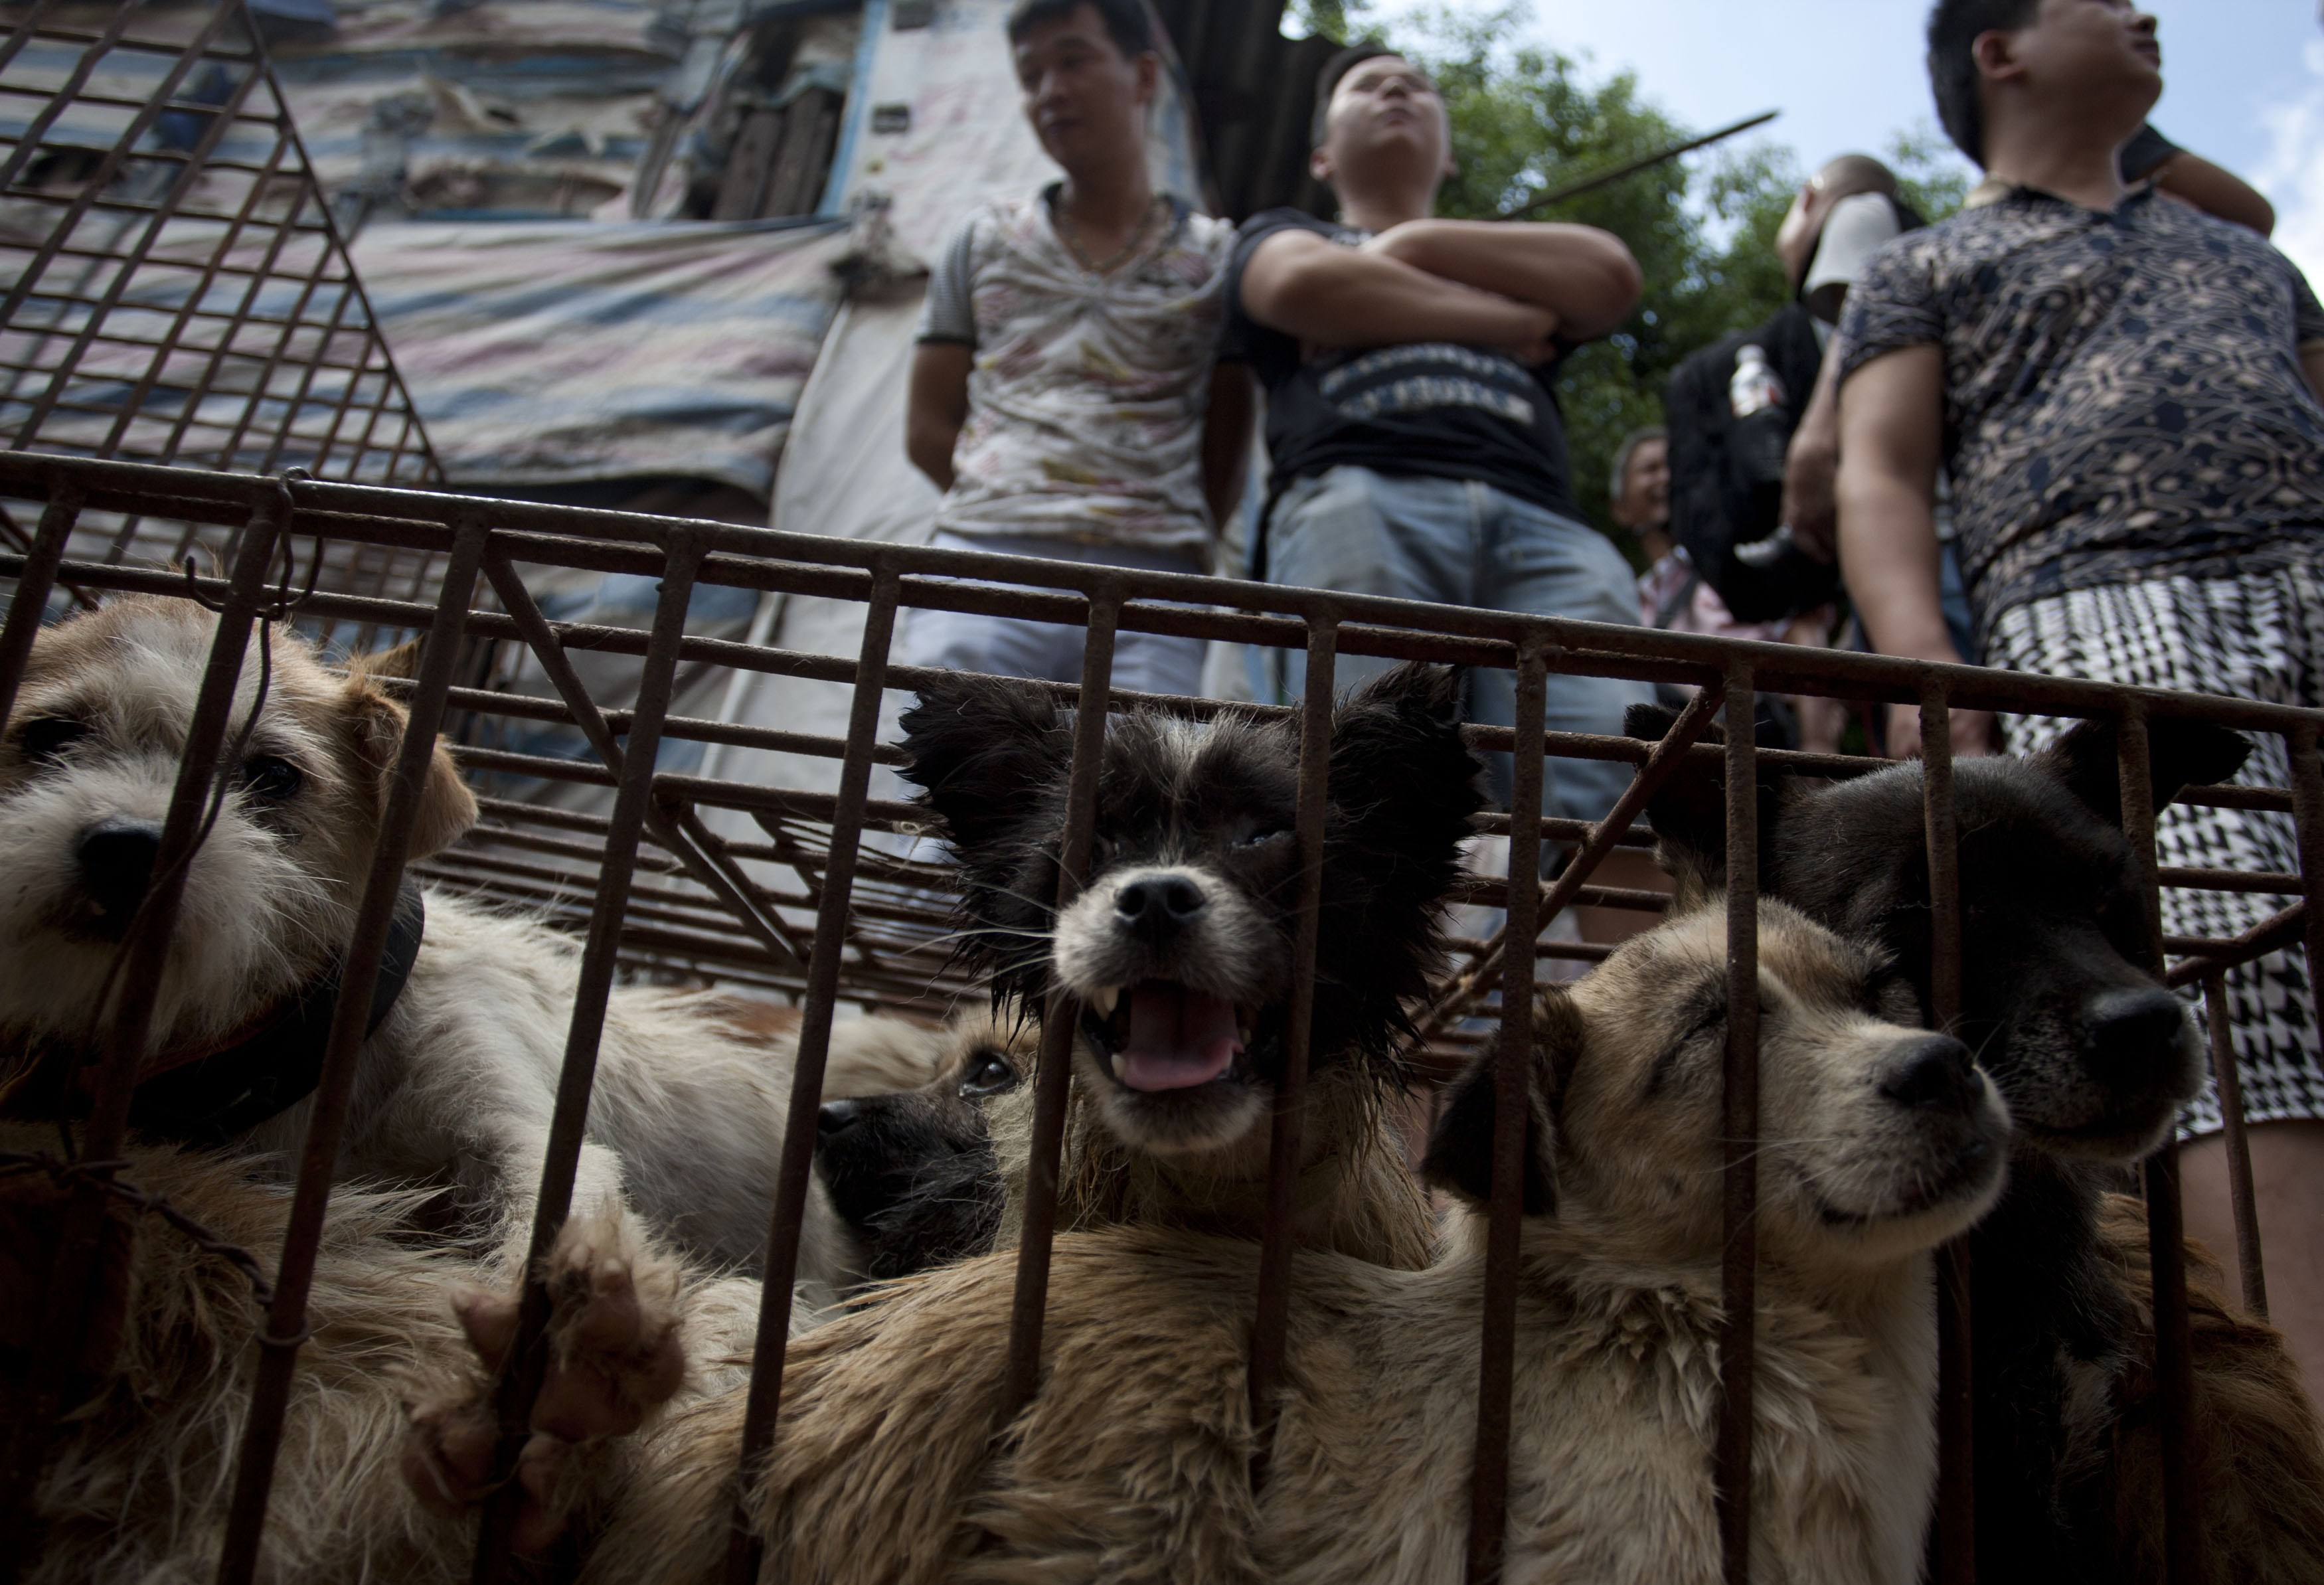 Vendors wait for customers to buy dogs in cages at a market in Yulin, in southern China's Guangxi province on June 21, 2015. The city holds an annual festival devoted to the animal's meat on the summer solstice which has provoked an increasing backlash from animal protection activists. CHINA OUT AFP PHOTO